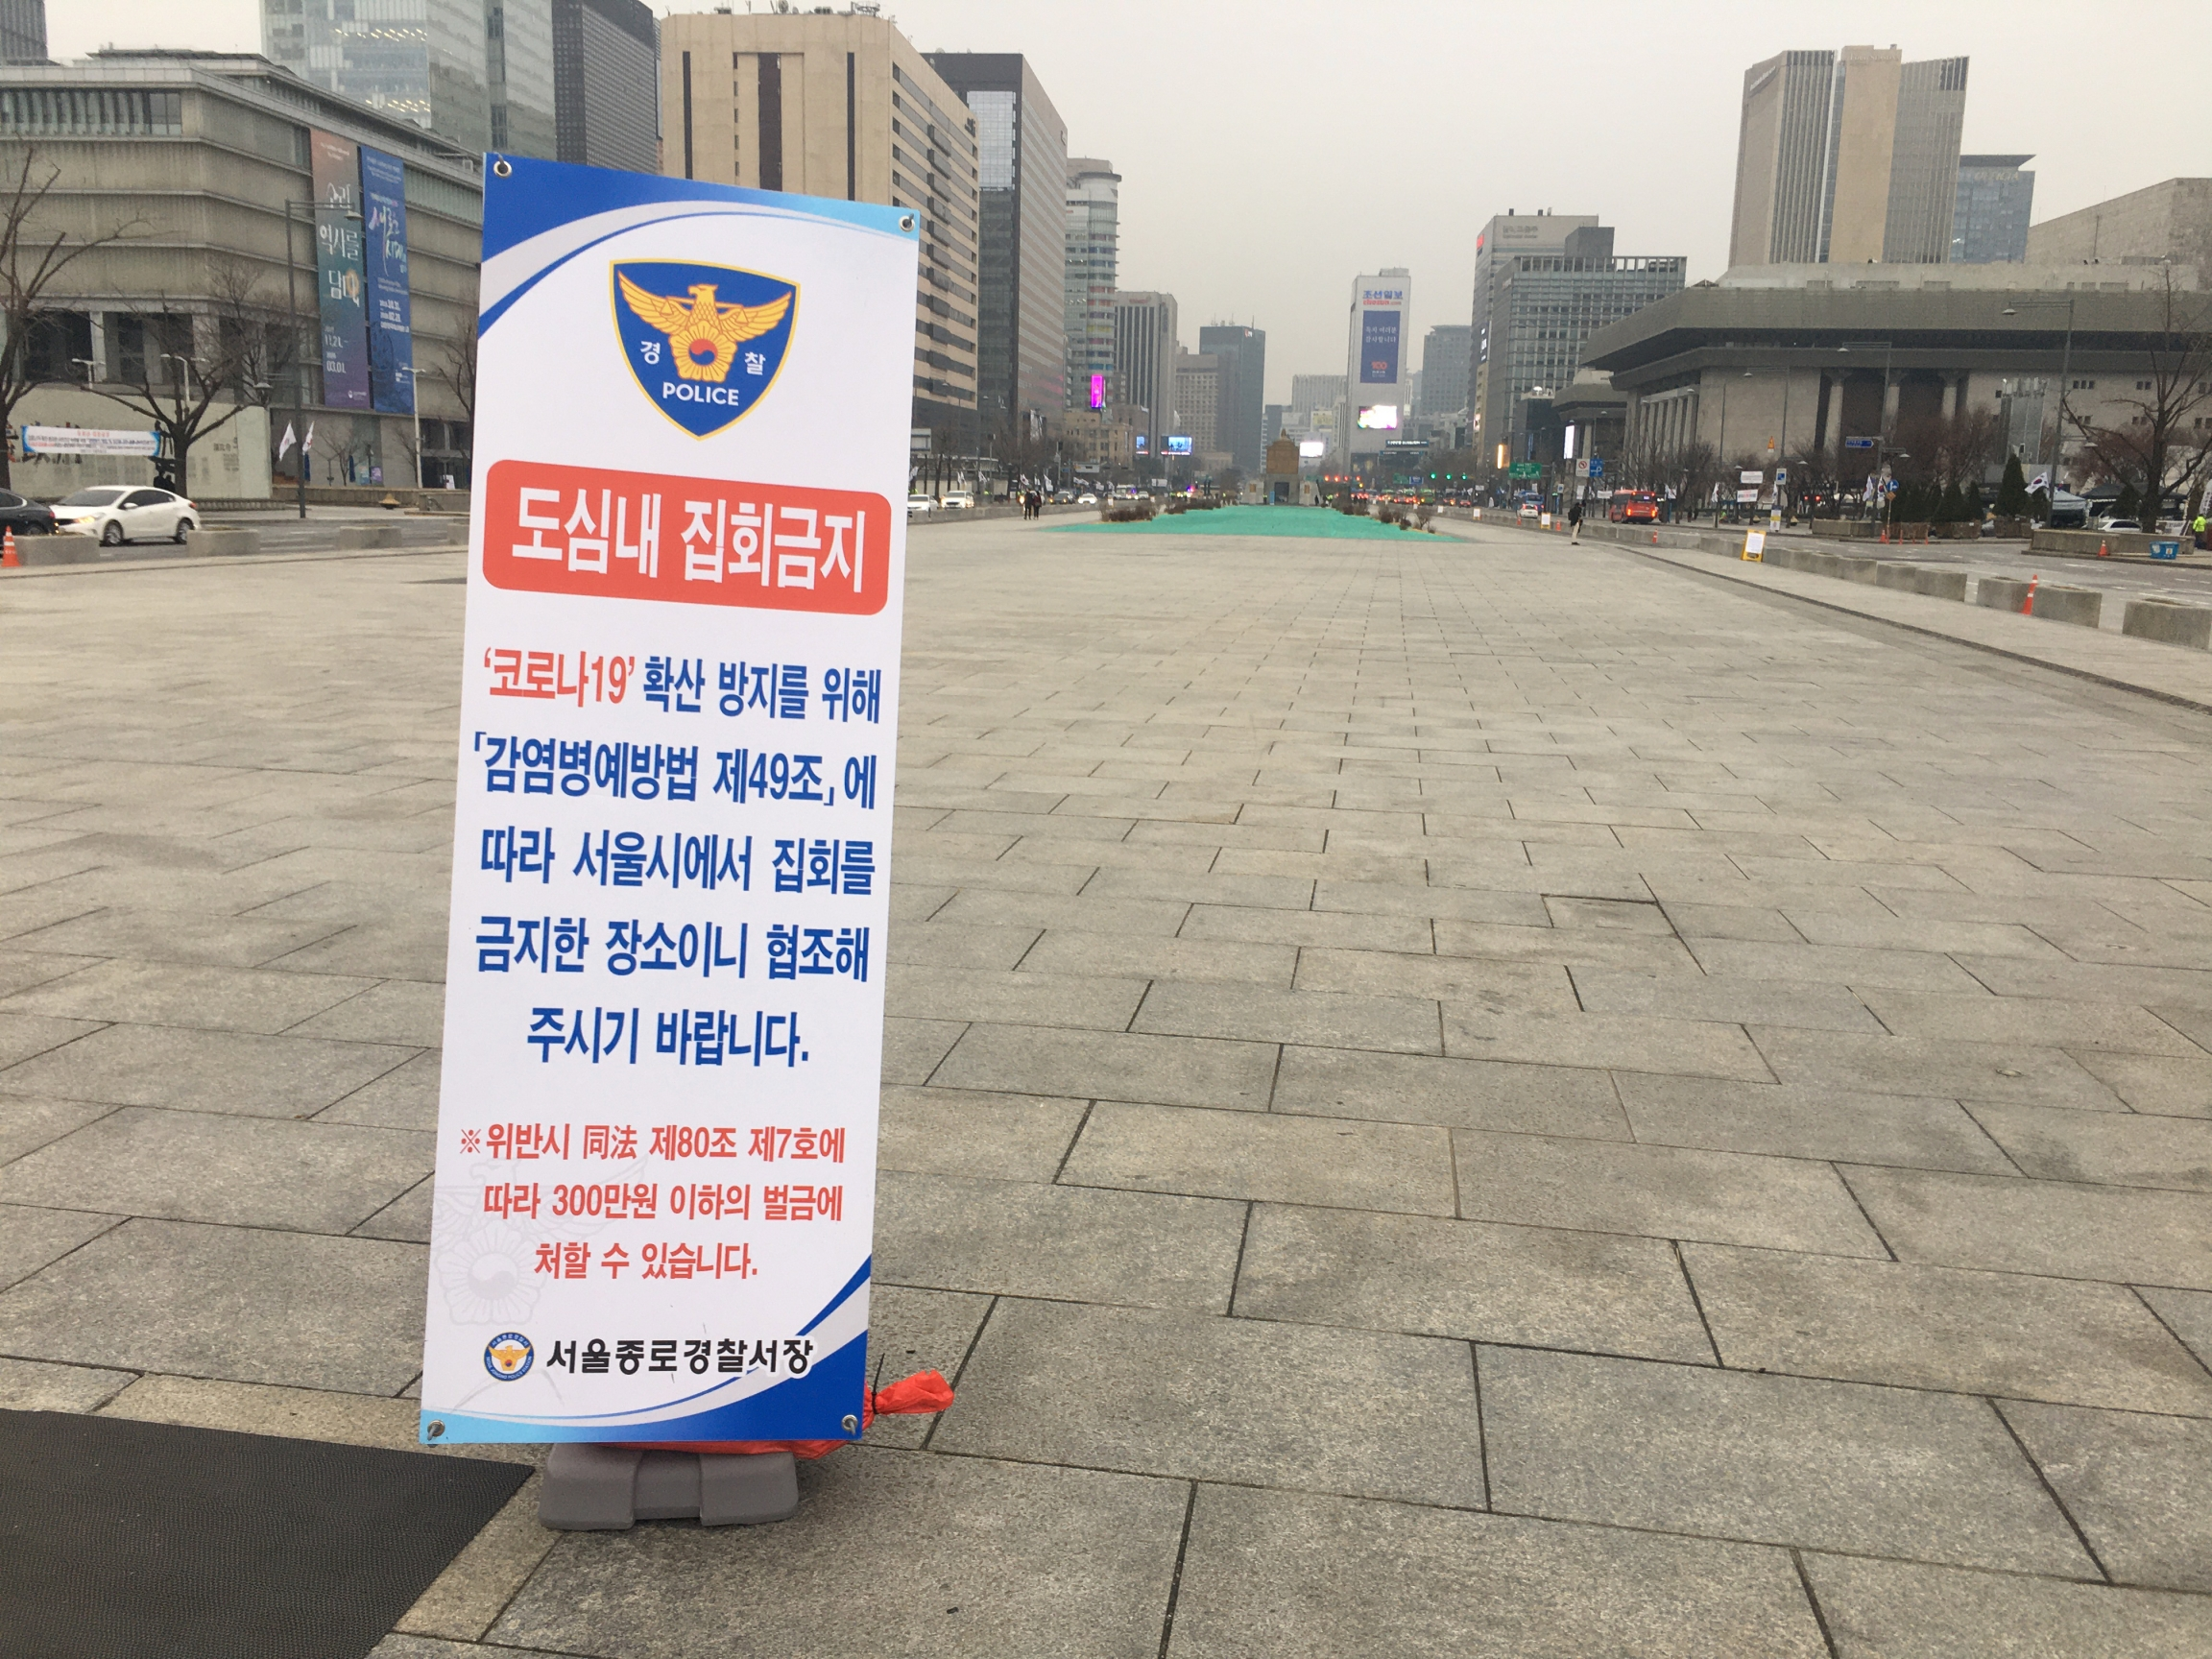 Seoul, South Korea, has banned protests during the coronavirus outbreak. A sign warns that violators will be fined nearly $3,000.